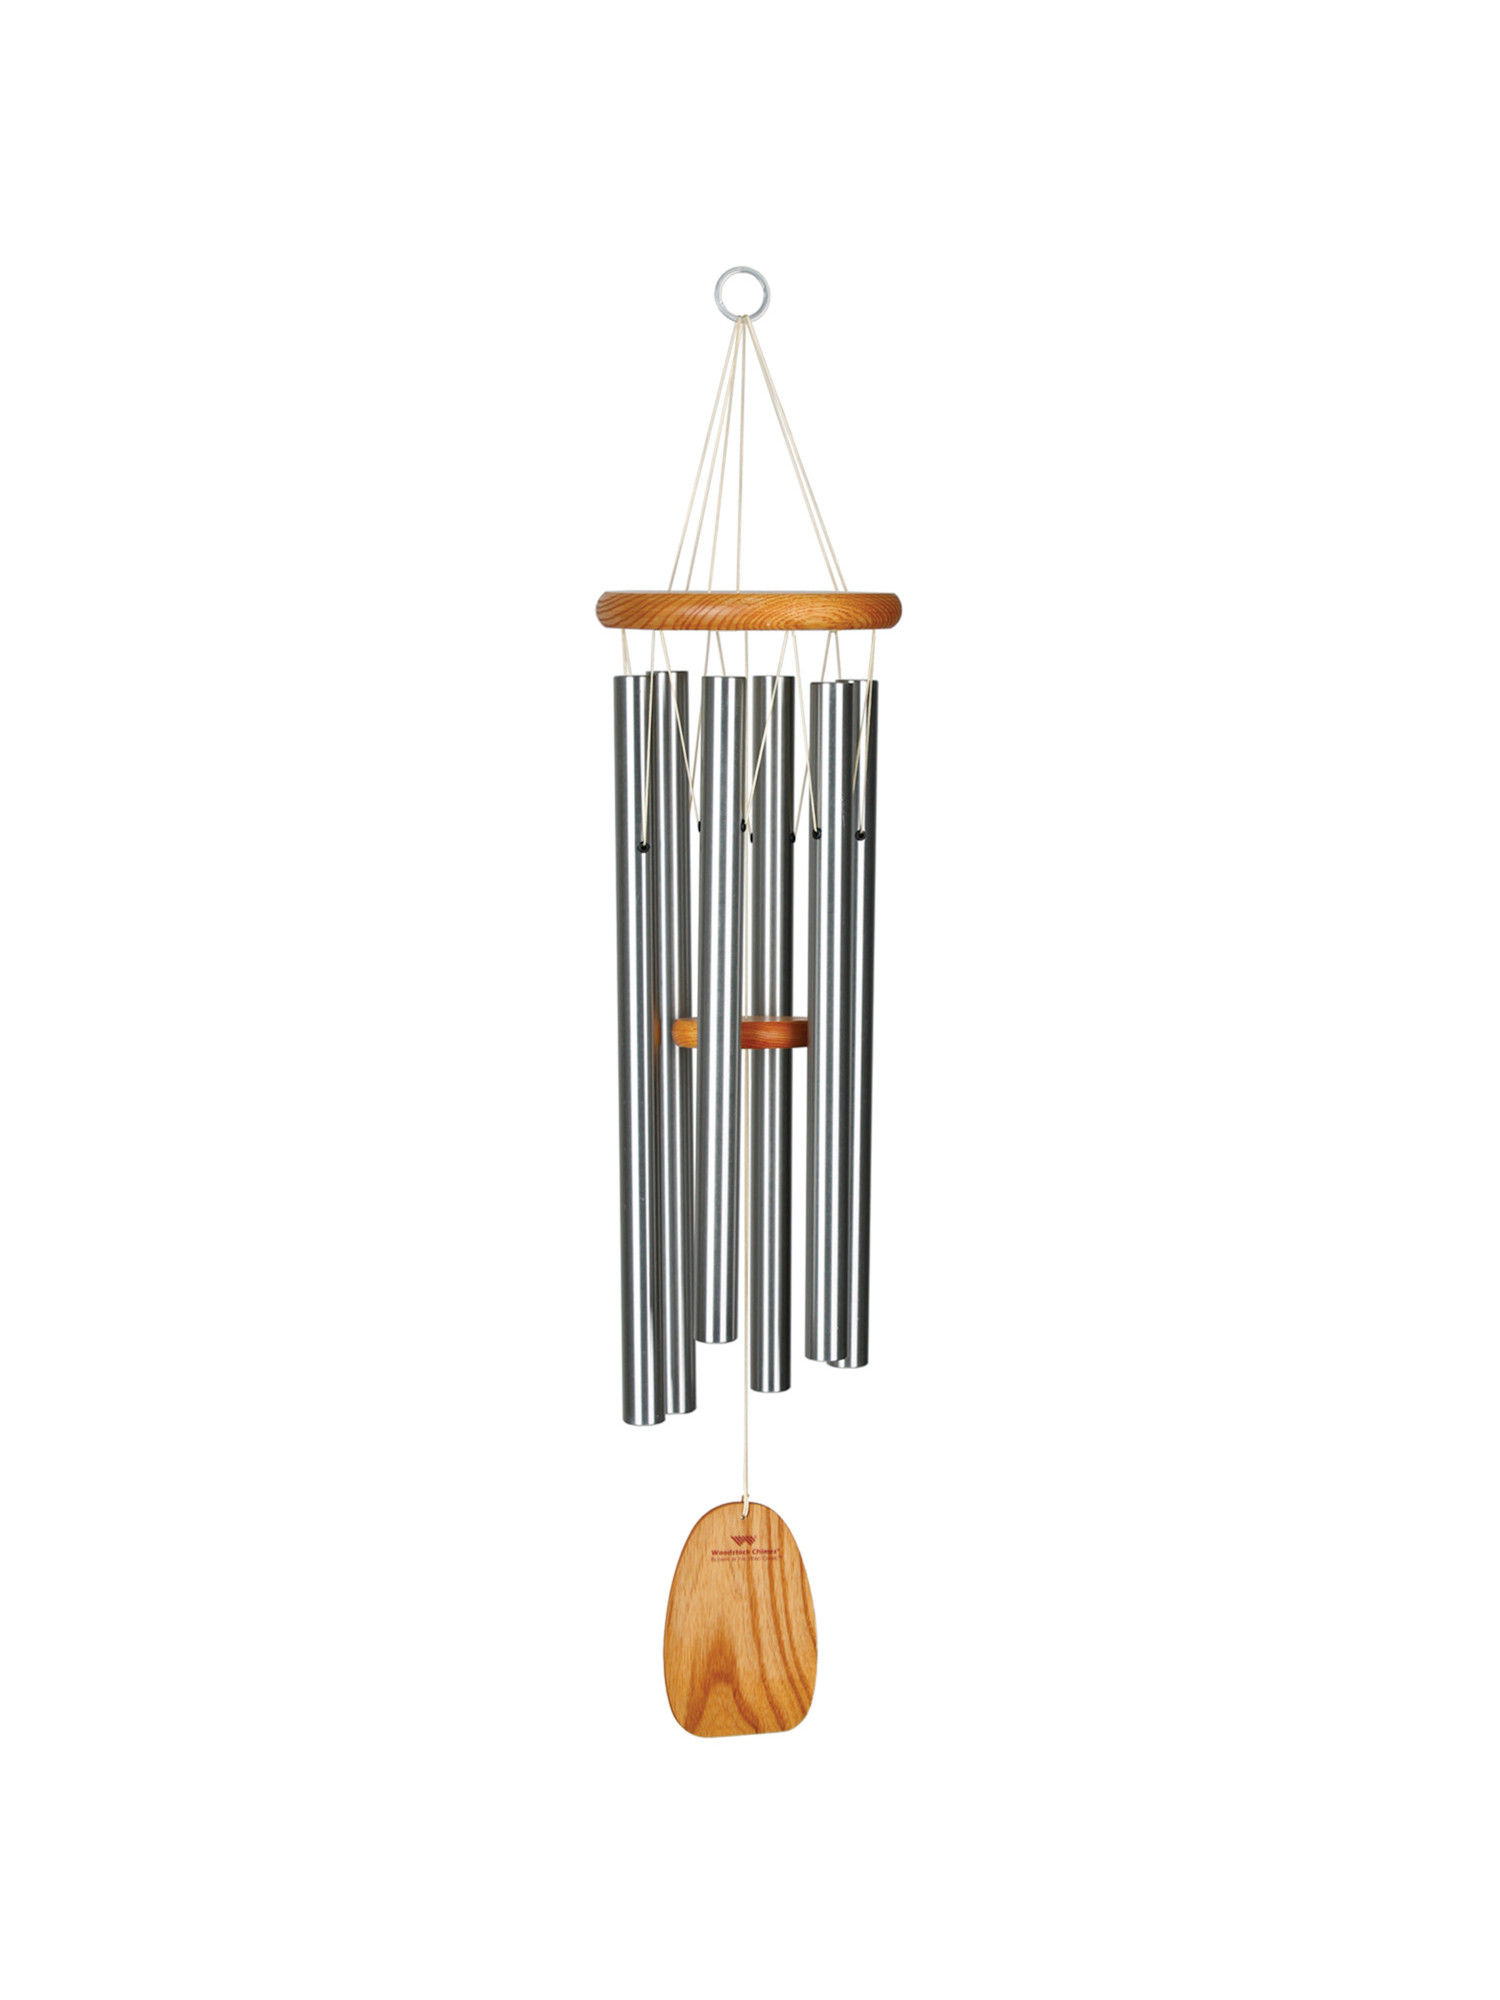 Woodstock Chimes Blowin in the Wind Chime by Woodstock Percussion Inc